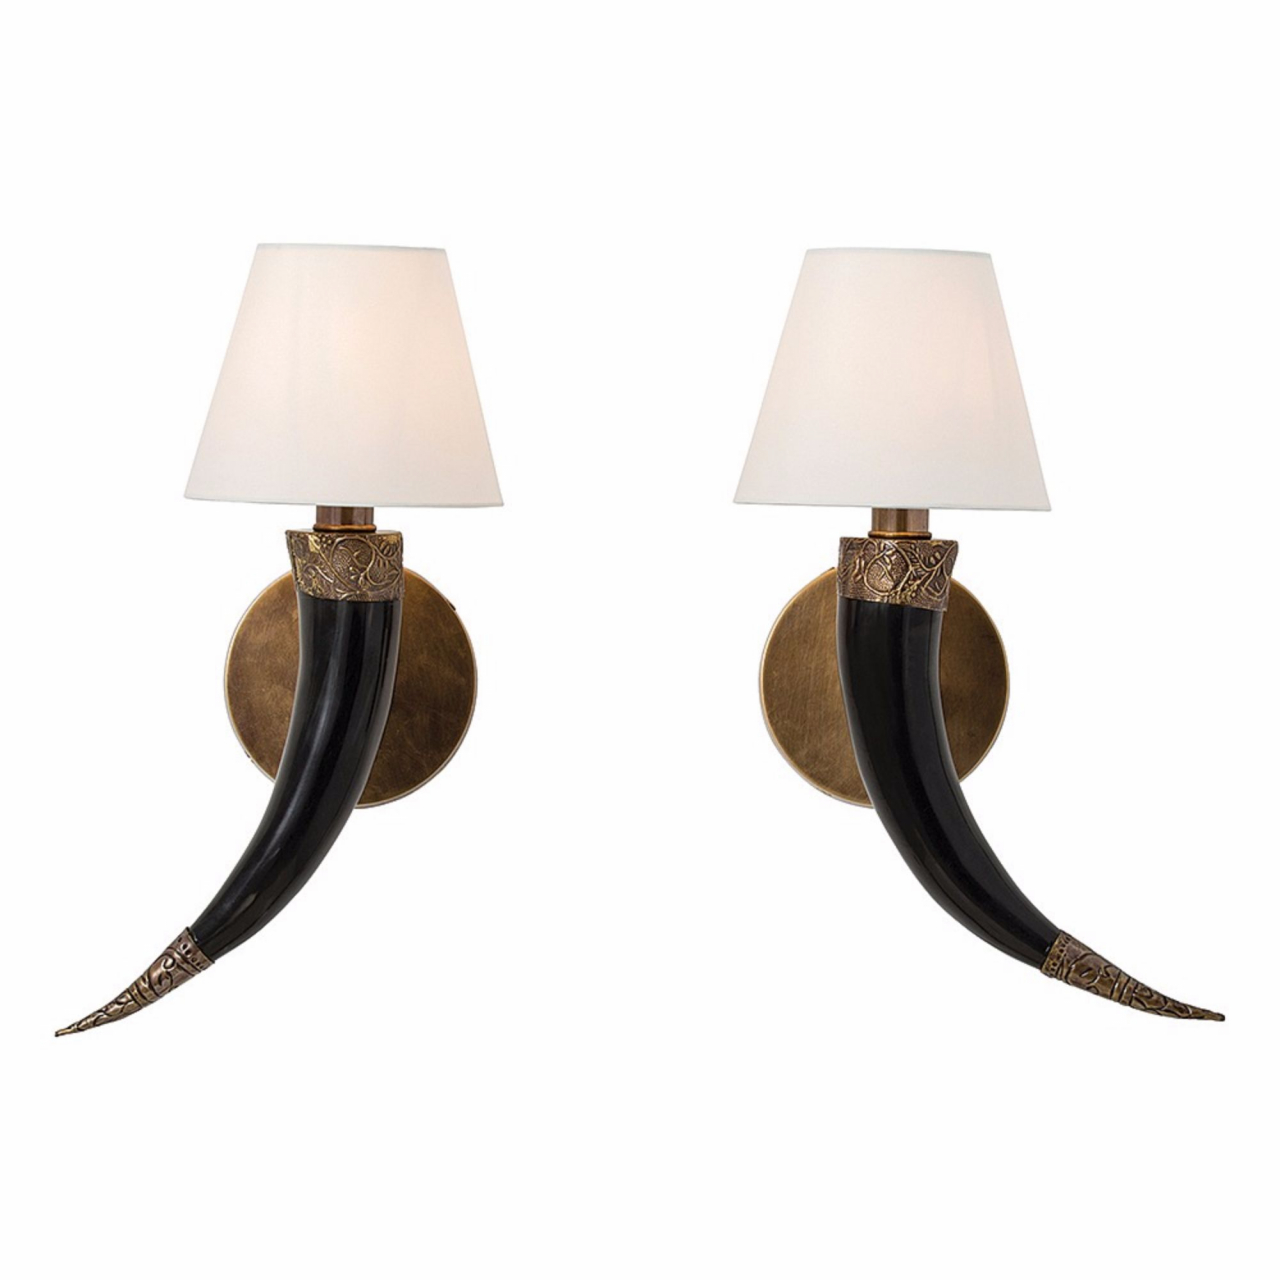 ARTERIORS Diana Sconces by Barry Dixon